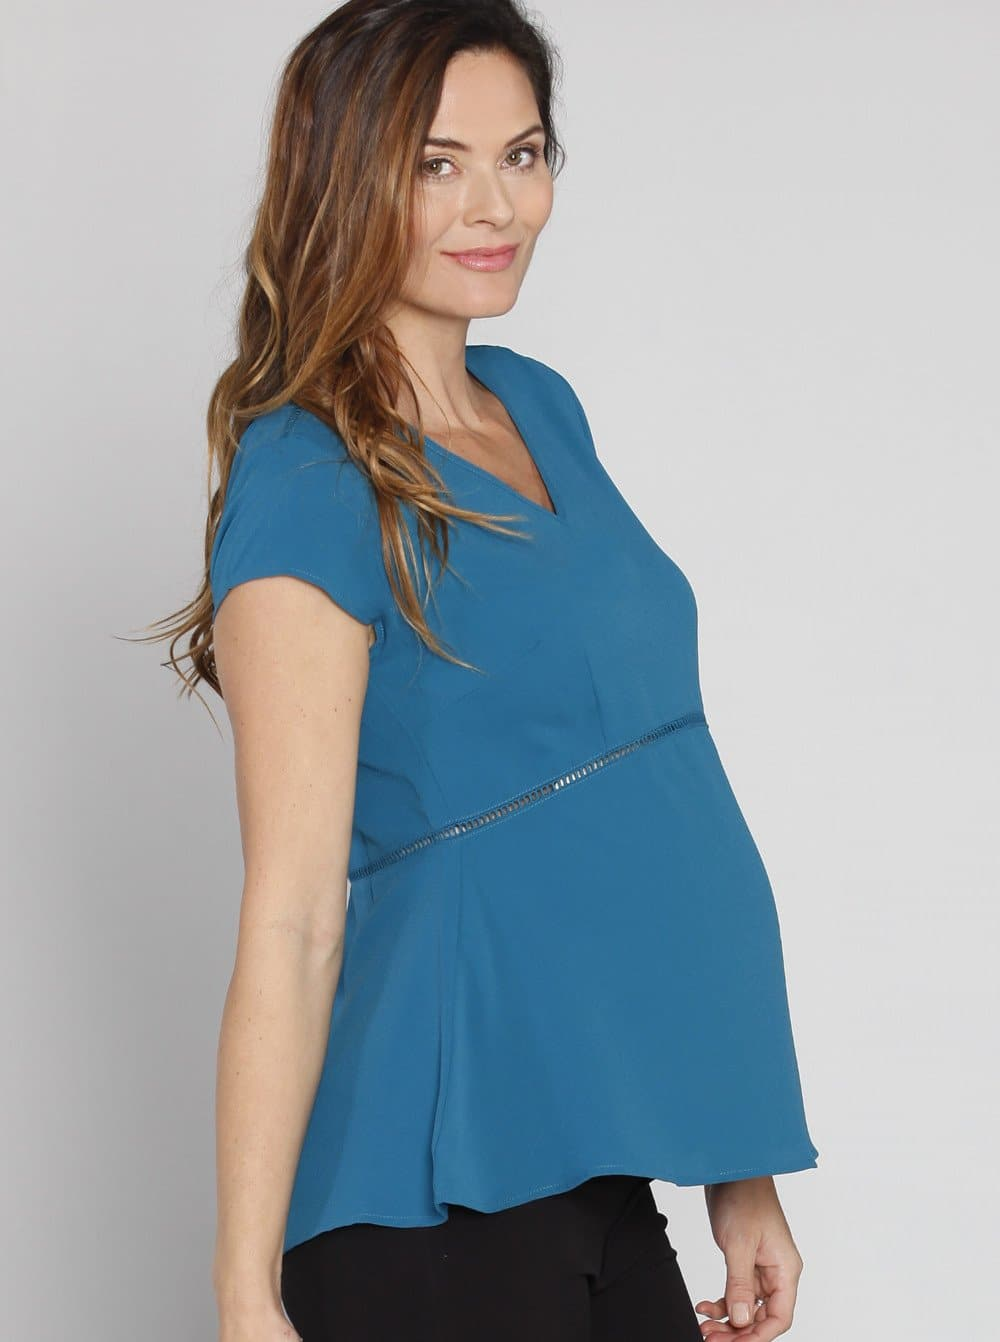 Maternity Dressy Short Sleeve Work Top - Teal Blue - Angel Maternity - Maternity clothes - shop online